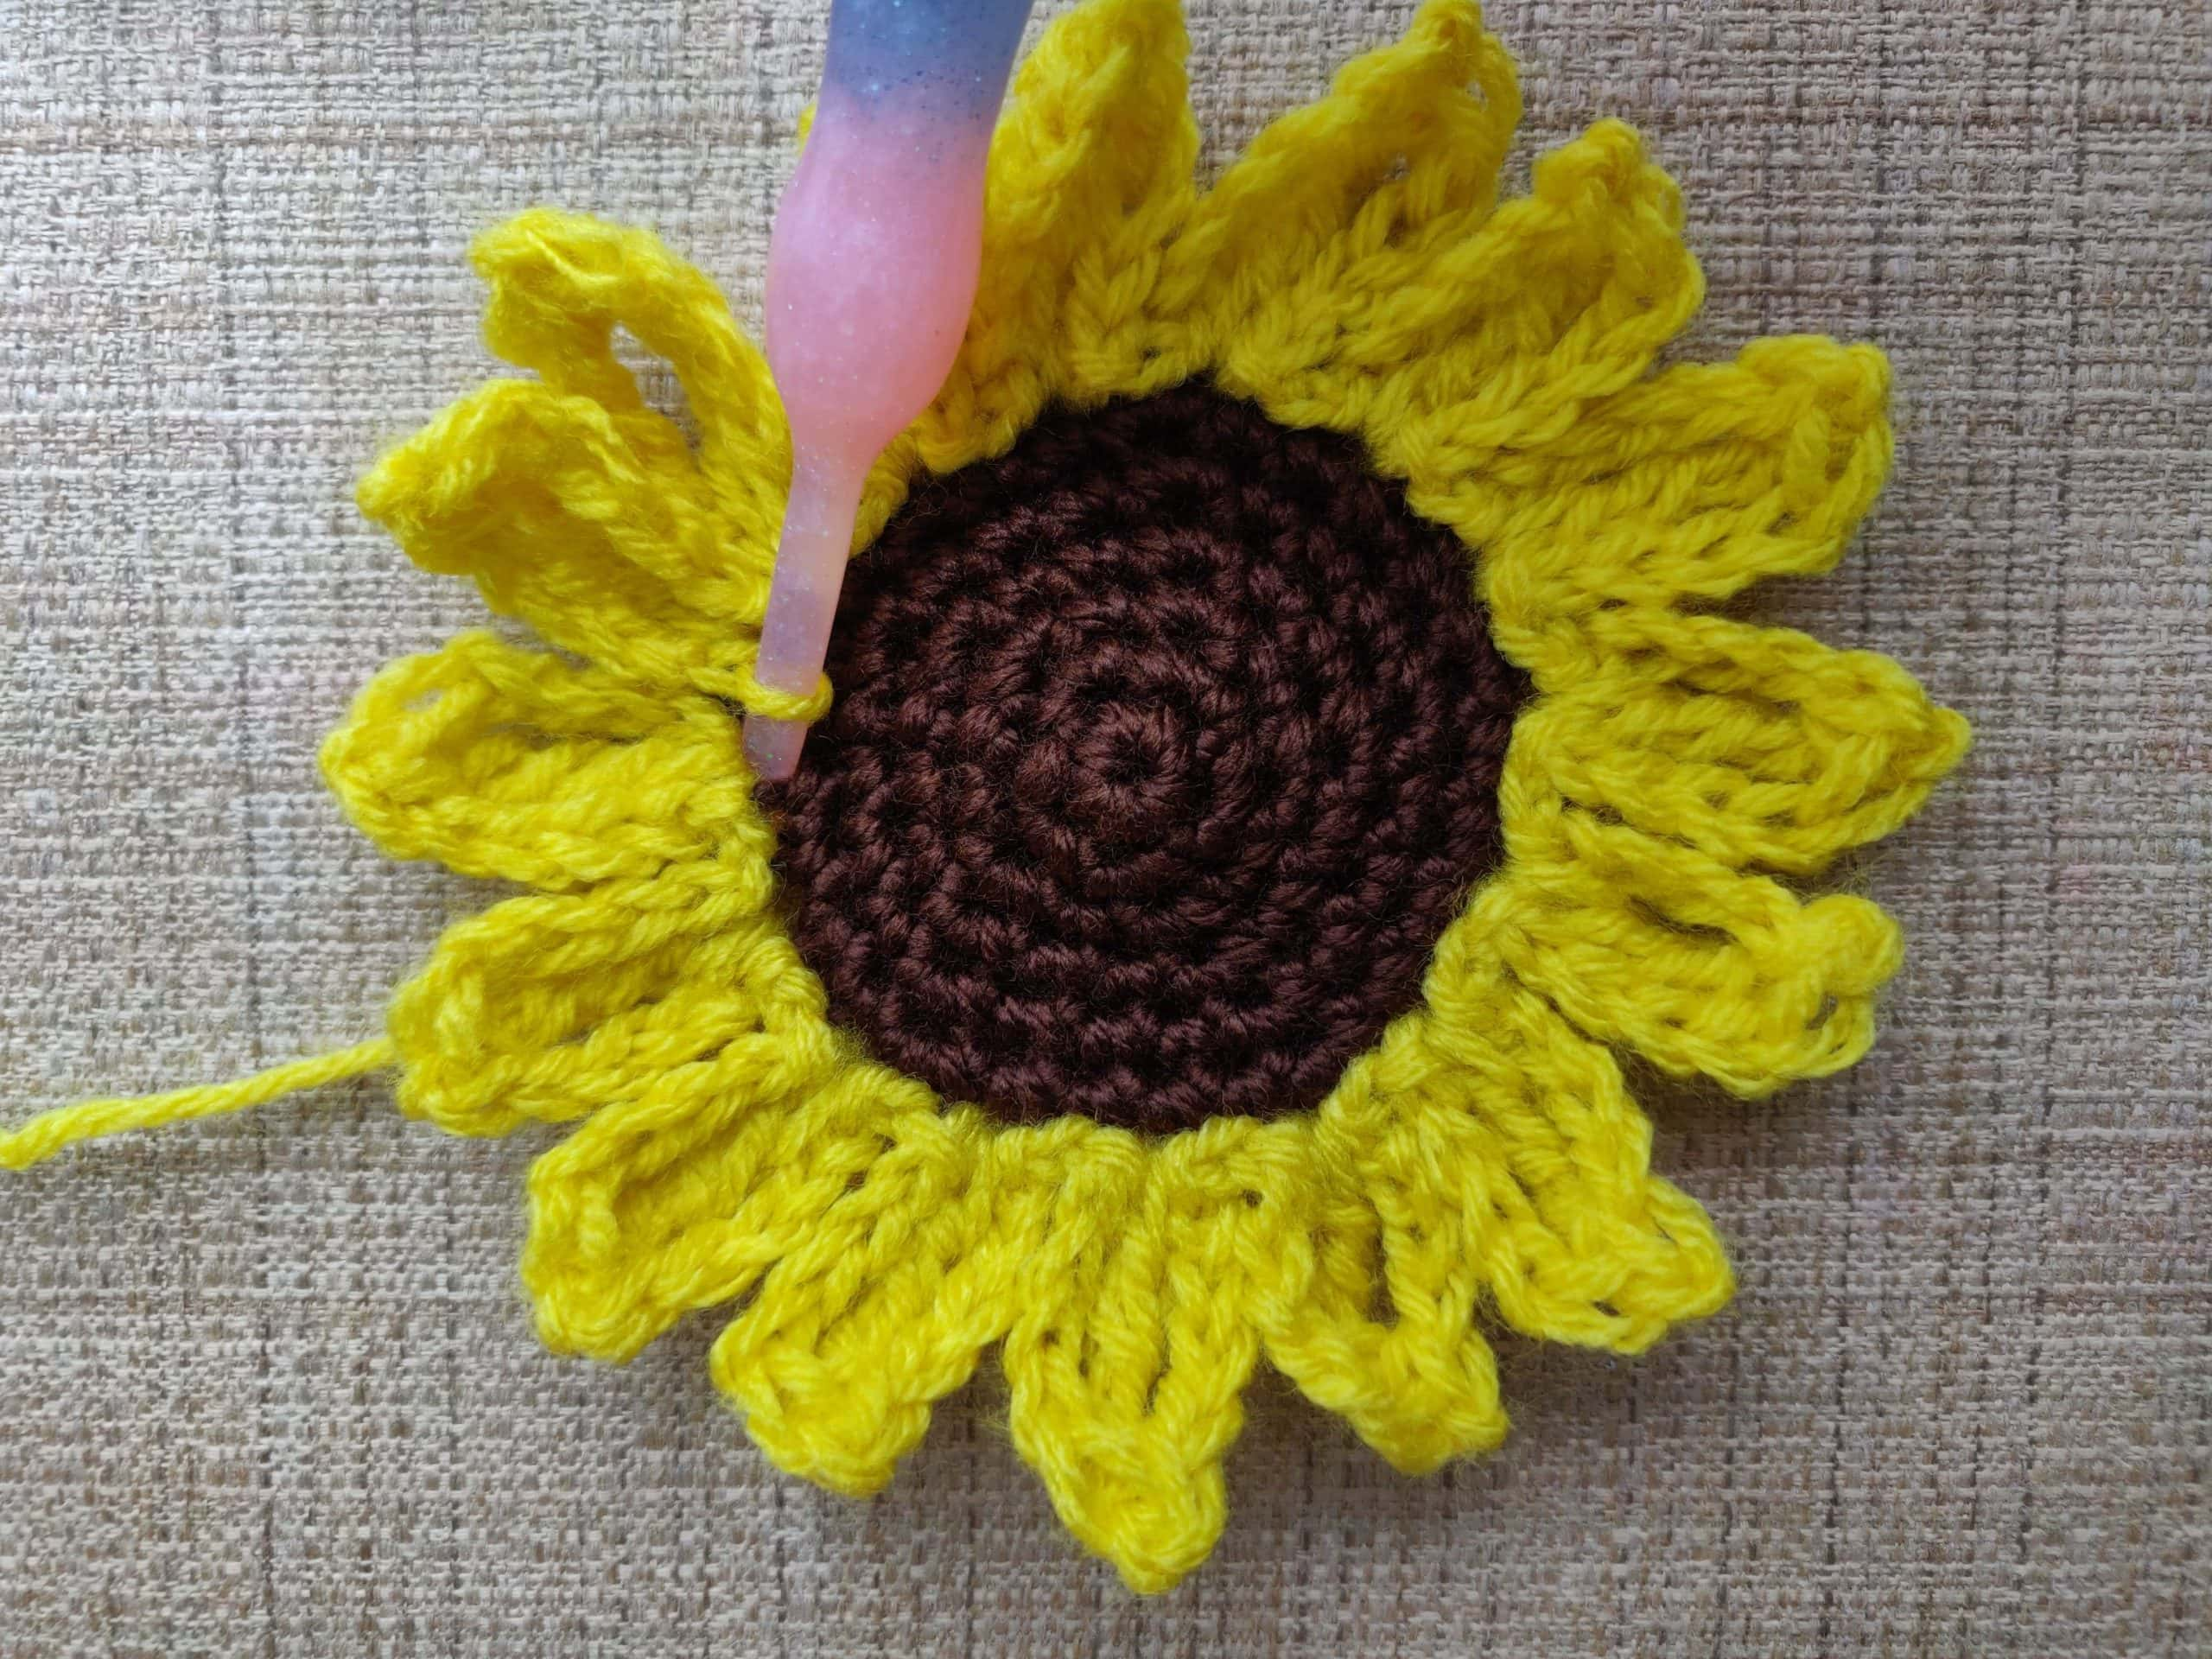 crochet sunflwoer applique. Brown and yellow yarn.